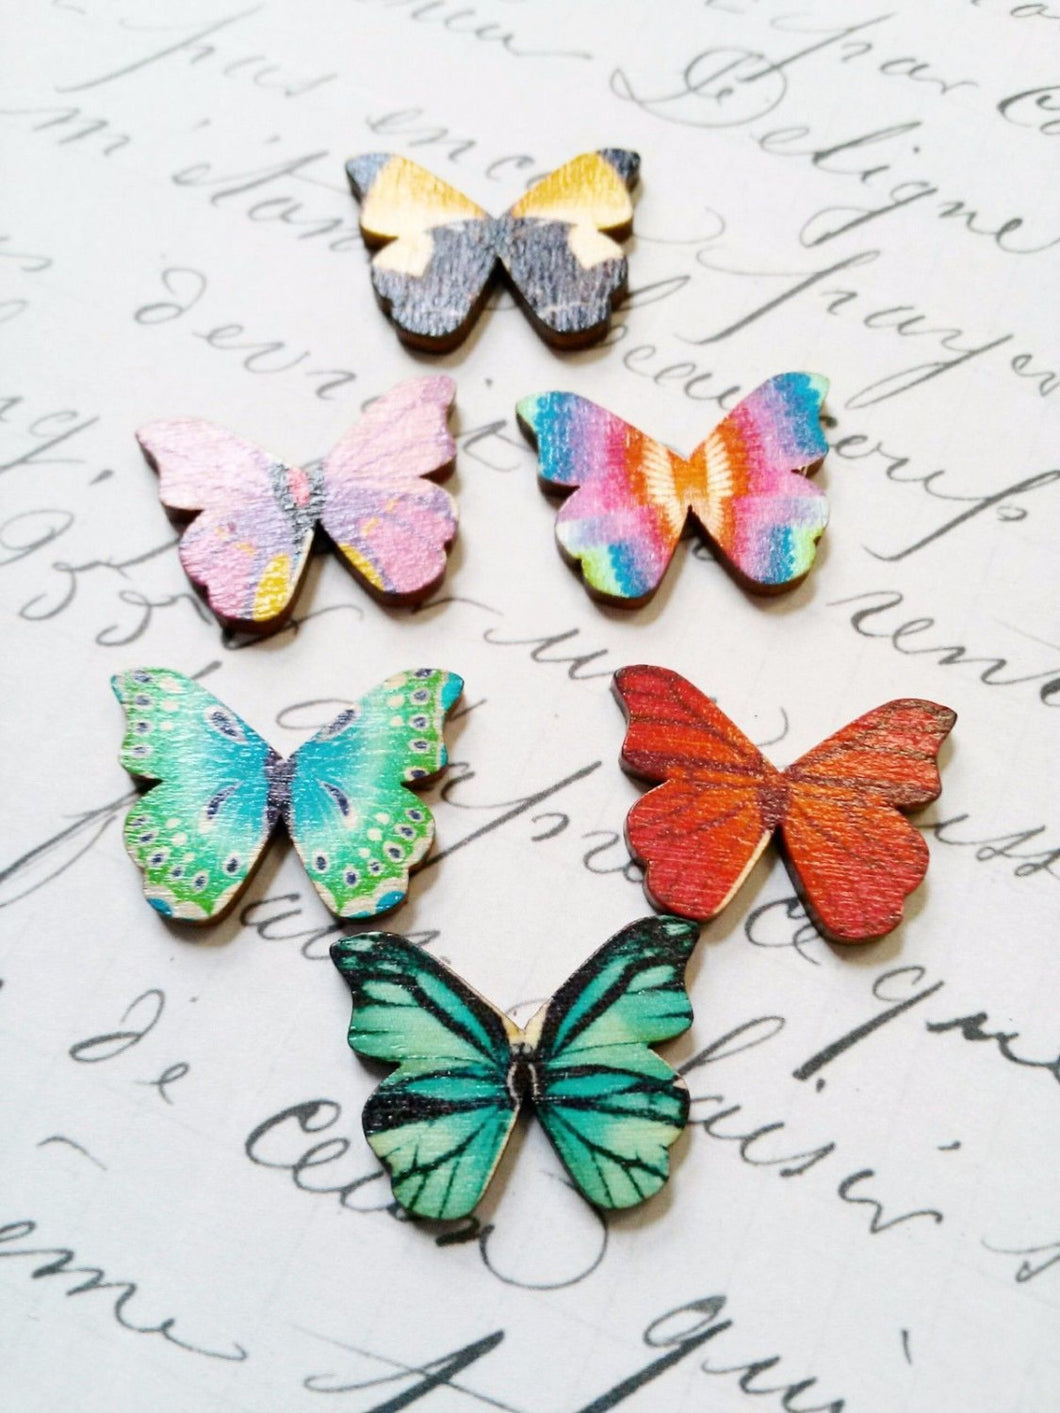 Butterfly Cabochons Assorted Wood Cabochons Colorful 4 pieces Butterflies Assorted Colors 28mm